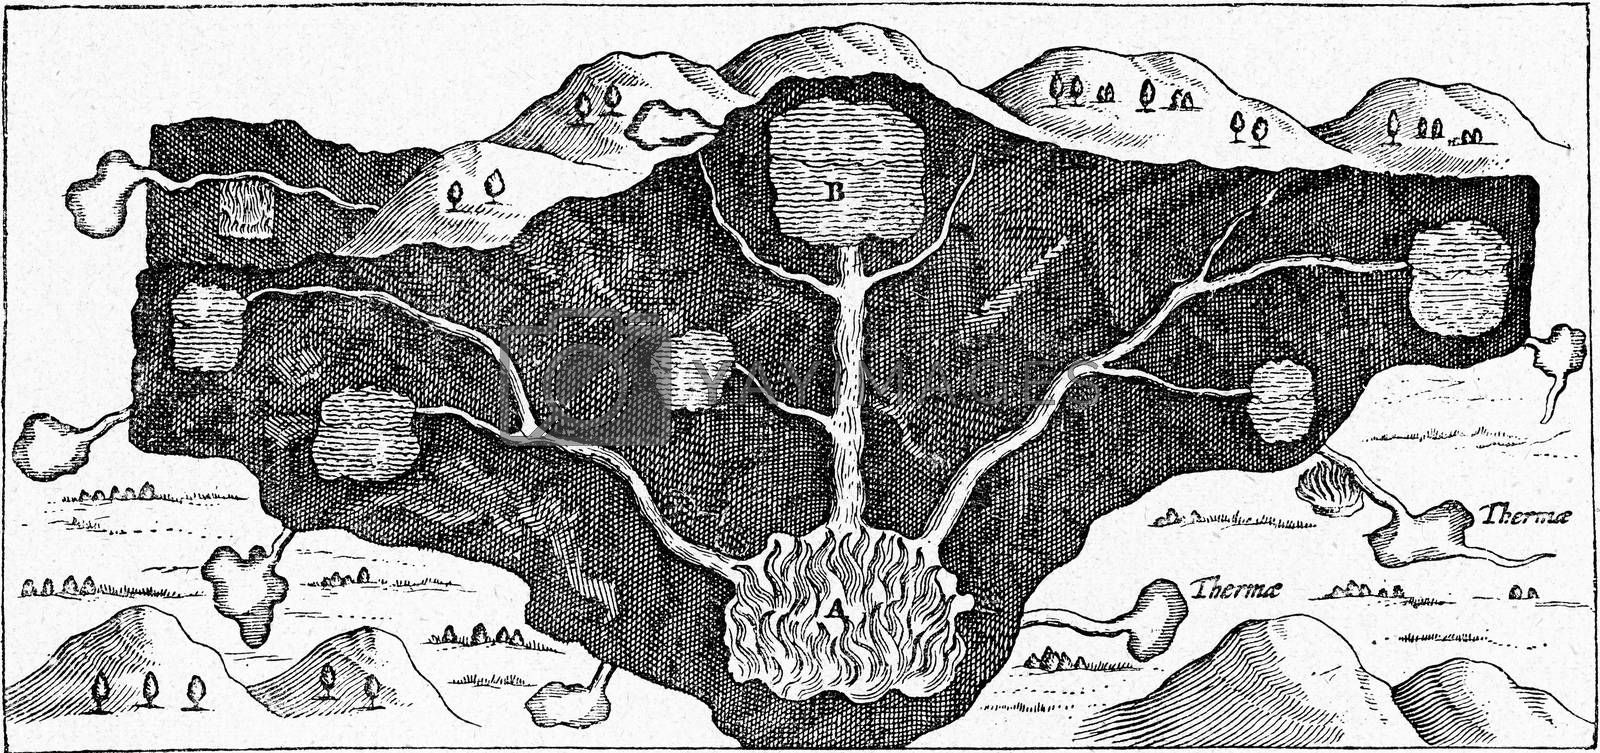 Formation of hot springs, vintage engraved illustration. From the Universe and Humanity, 1910.